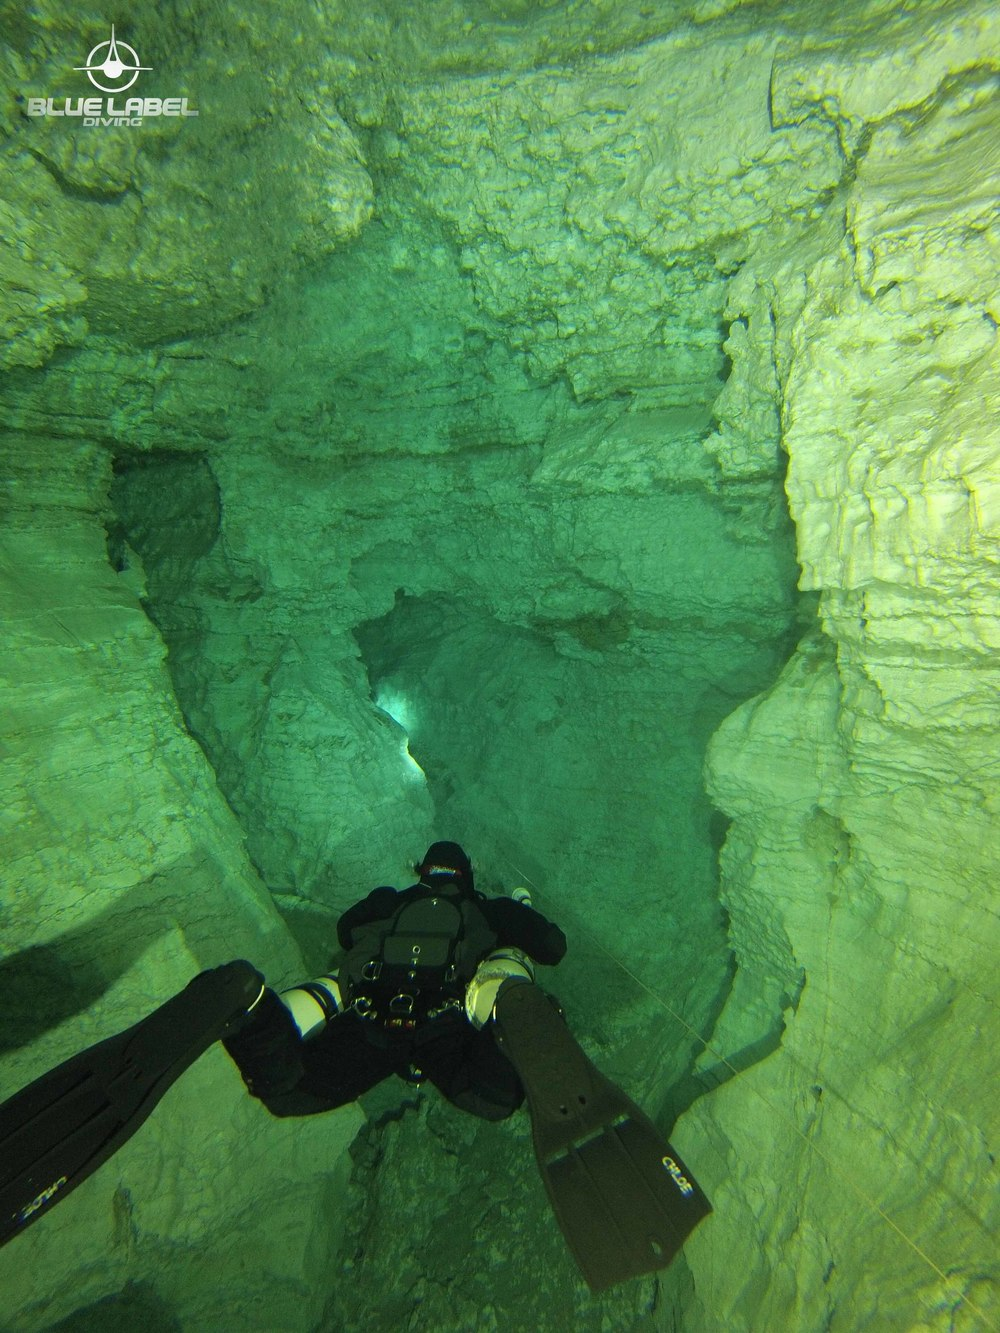 My jet fins in action at Orda Cave, Russia. Photo by Ben Reymenants of Blue Label Diving